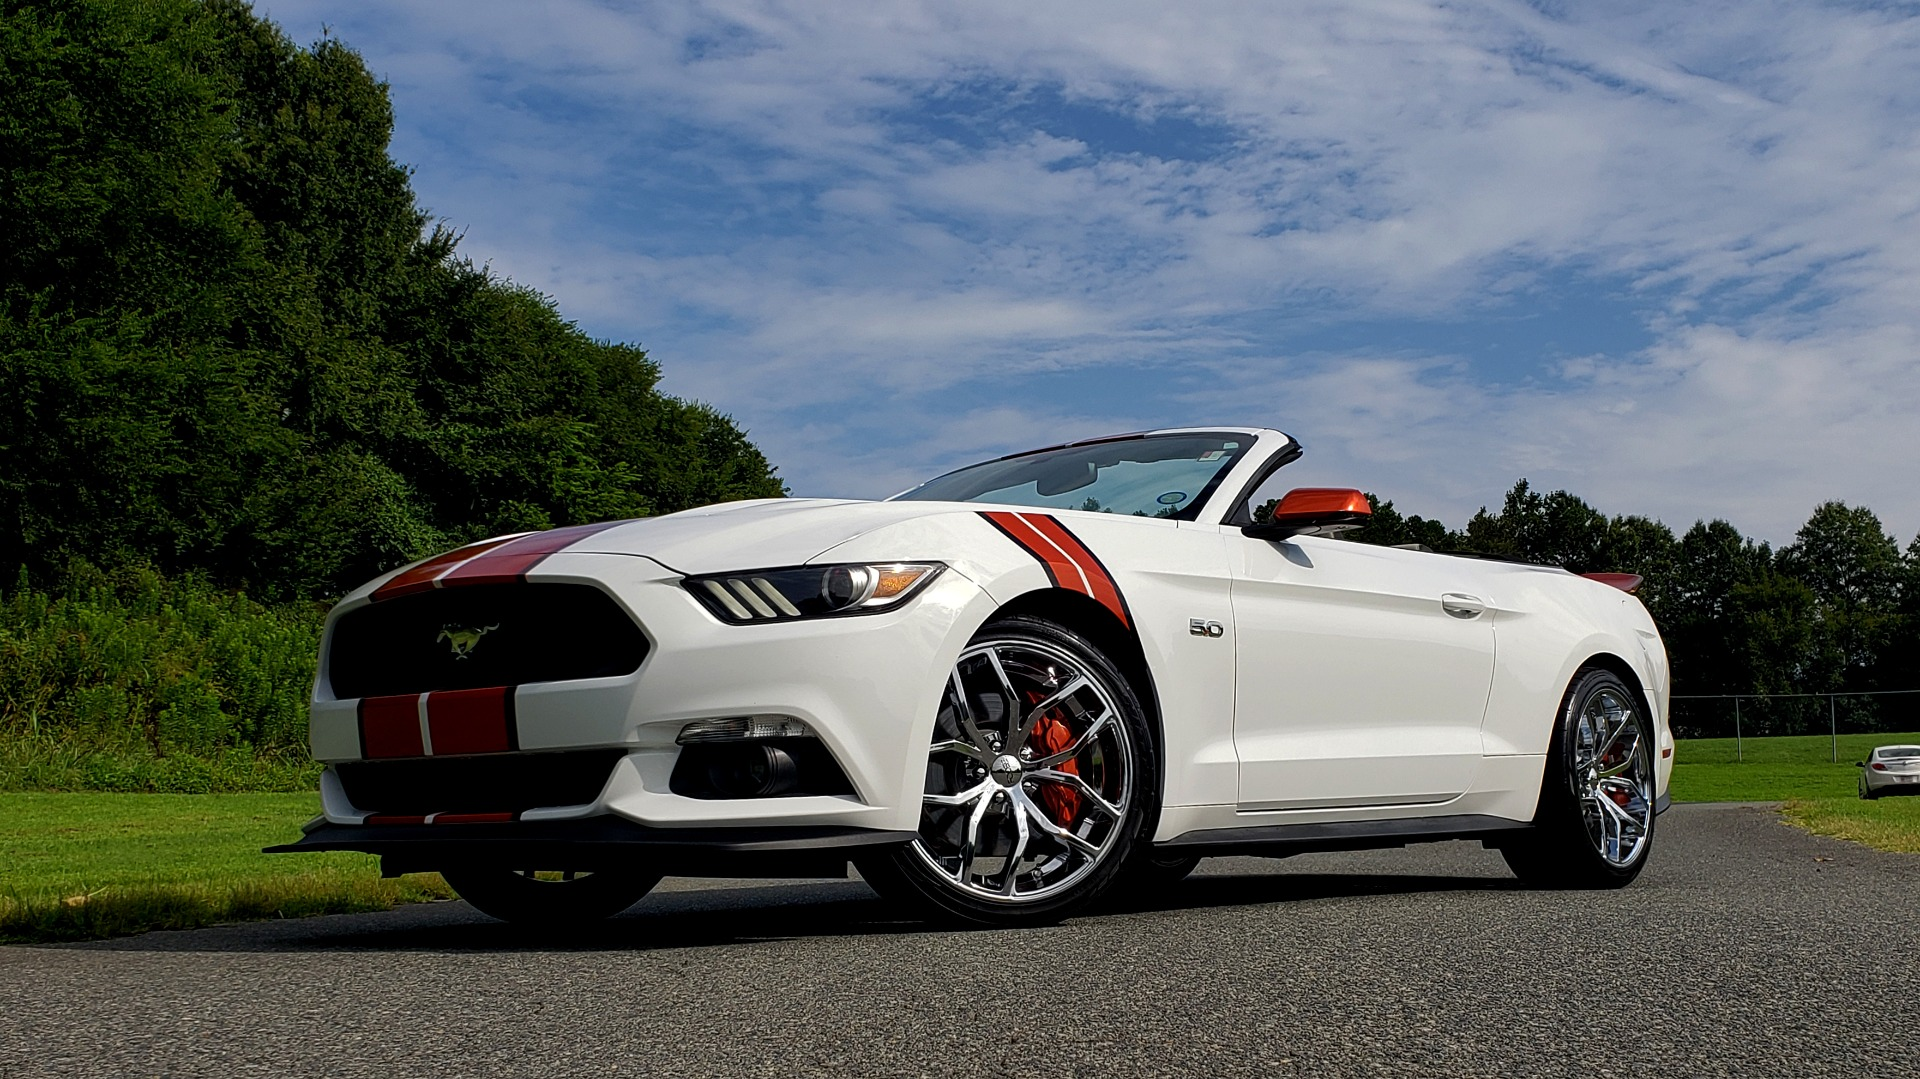 Used 2017 Ford MUSTANG GT PREMIUM CONV / 5.0L V8 / 6-SPD AUTO / NAV / HTD STS / REARVIEW for sale Sold at Formula Imports in Charlotte NC 28227 3